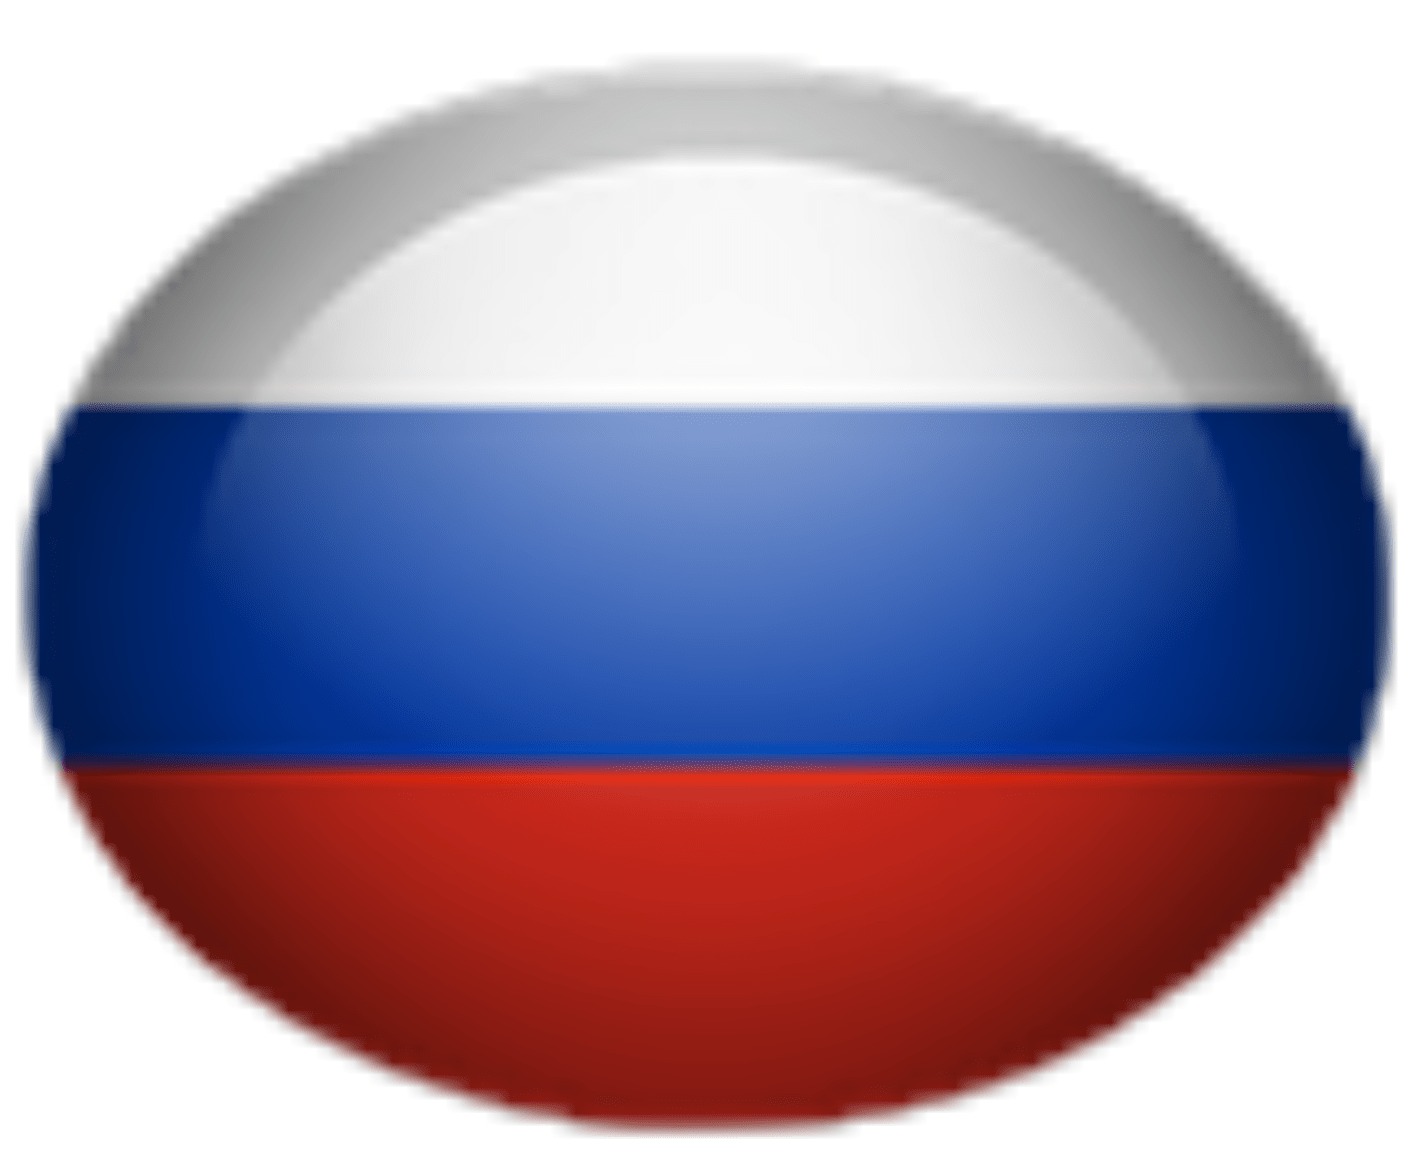 Traduction du mod Mod d'Allocation en Russe